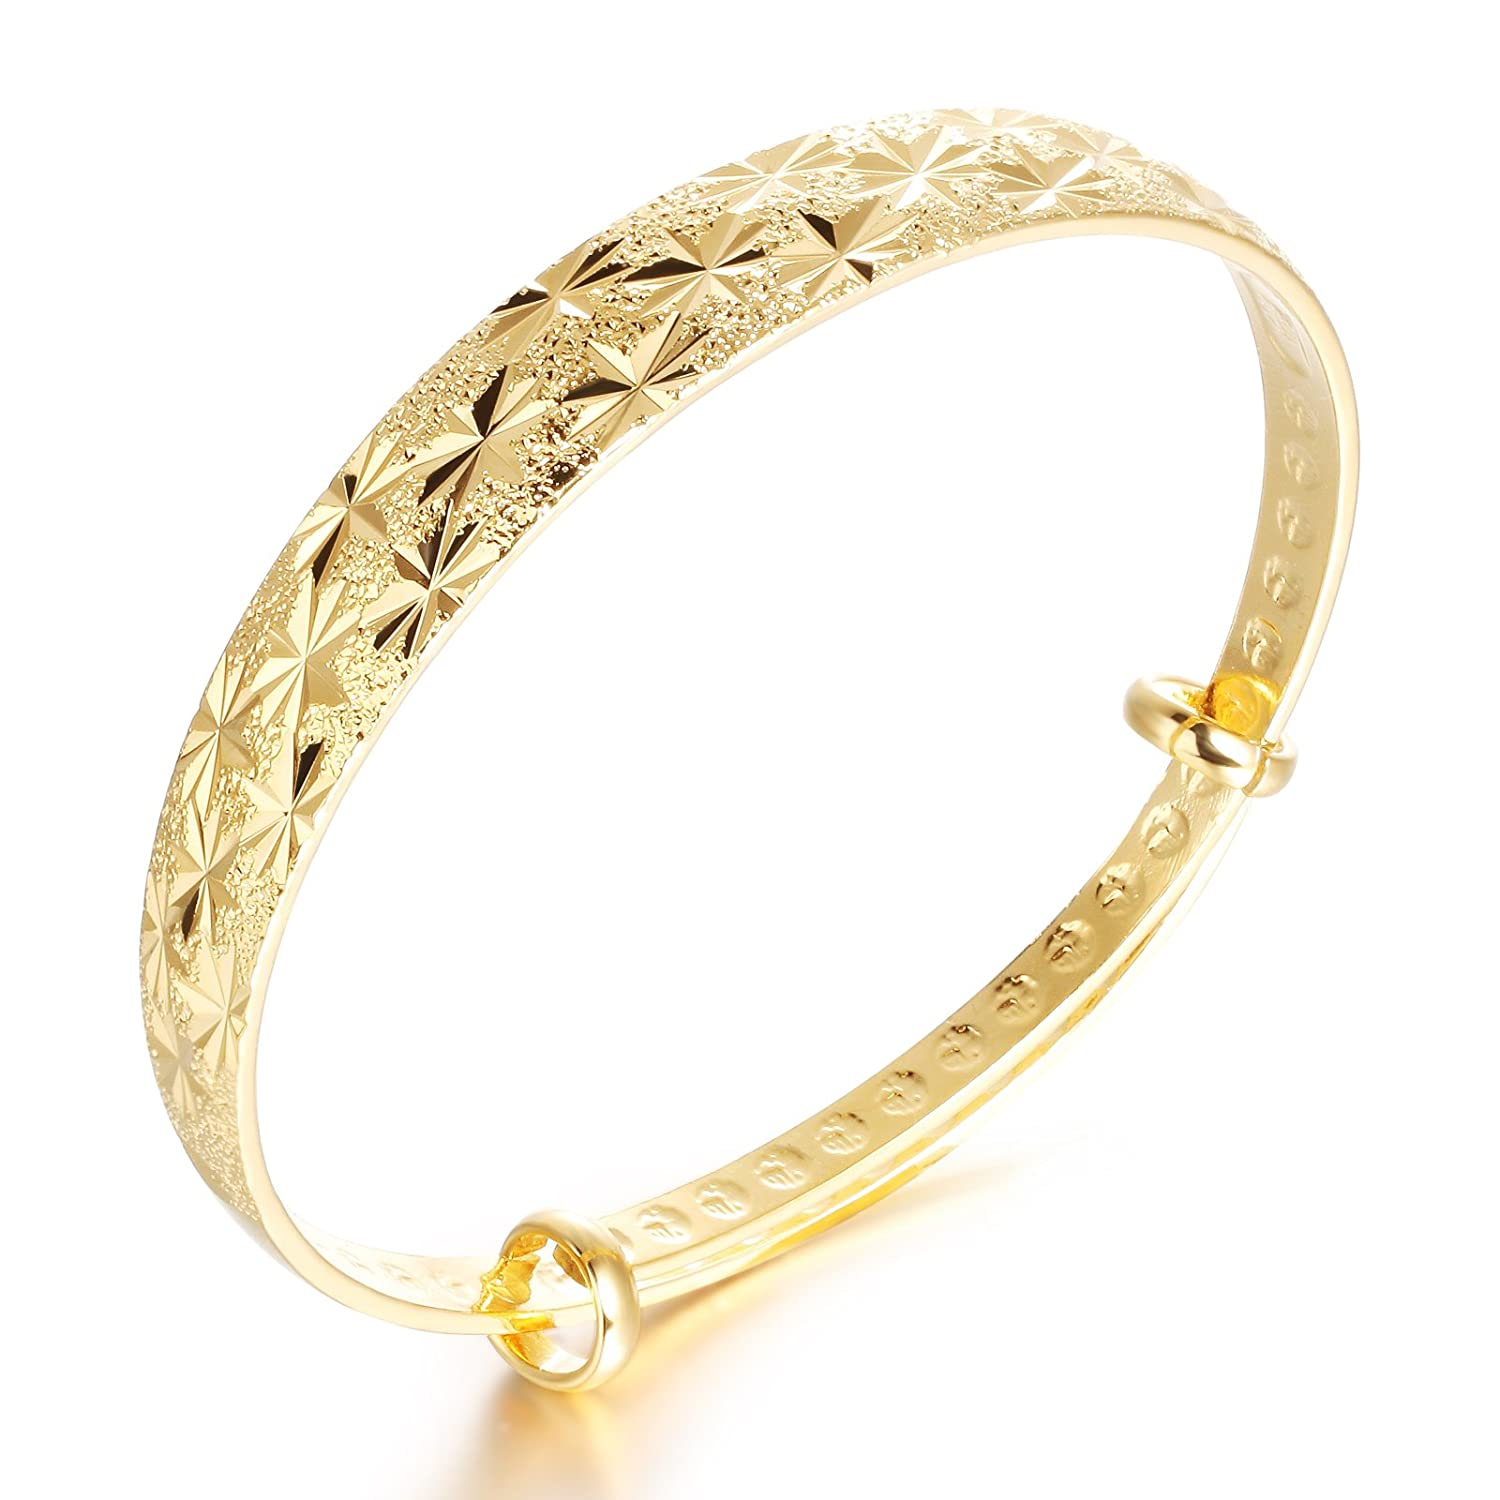 tone bracelets girl bangle bangles girls bracelet emoji charm gold